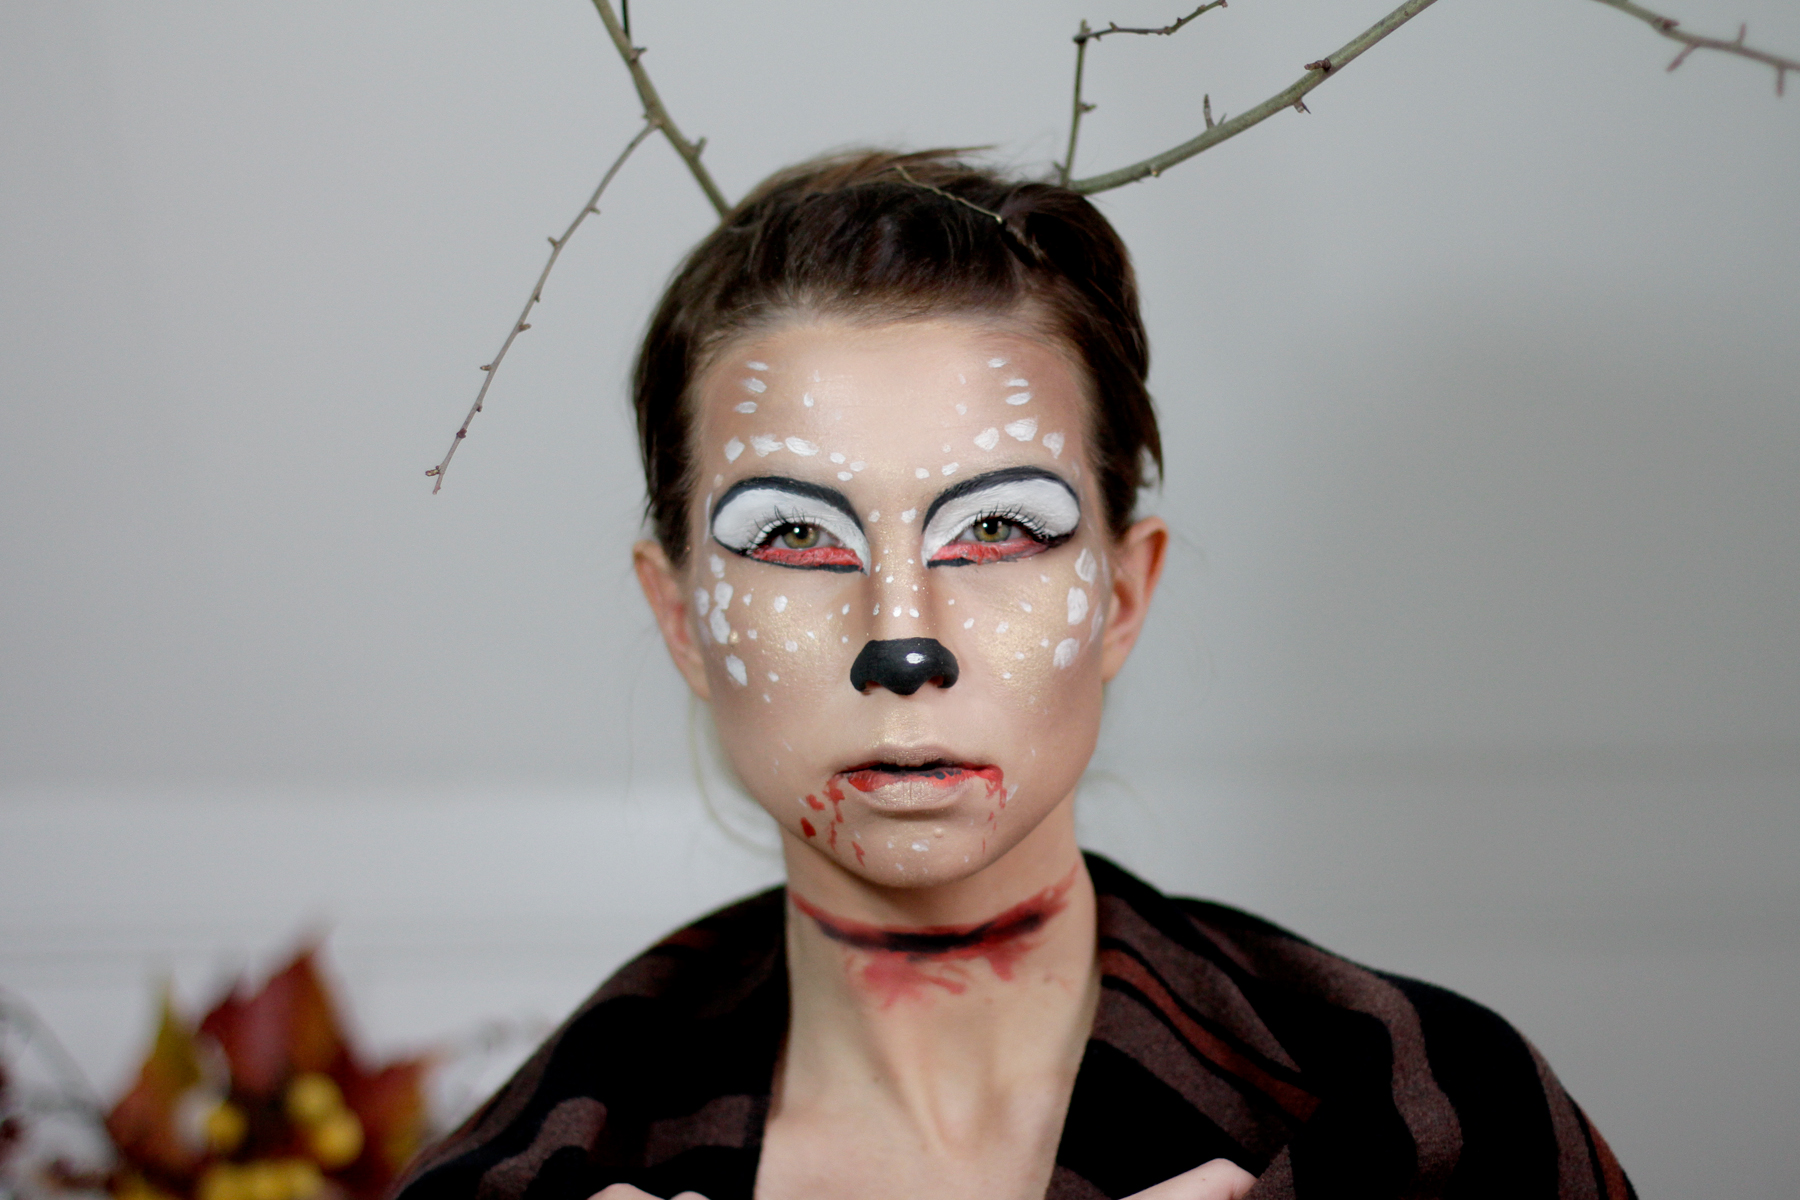 halloween bambi deer make up styling idea tutorial how to schminken grusel scary cats & dogs beauty blog beautyblogger ricarda schernus 4